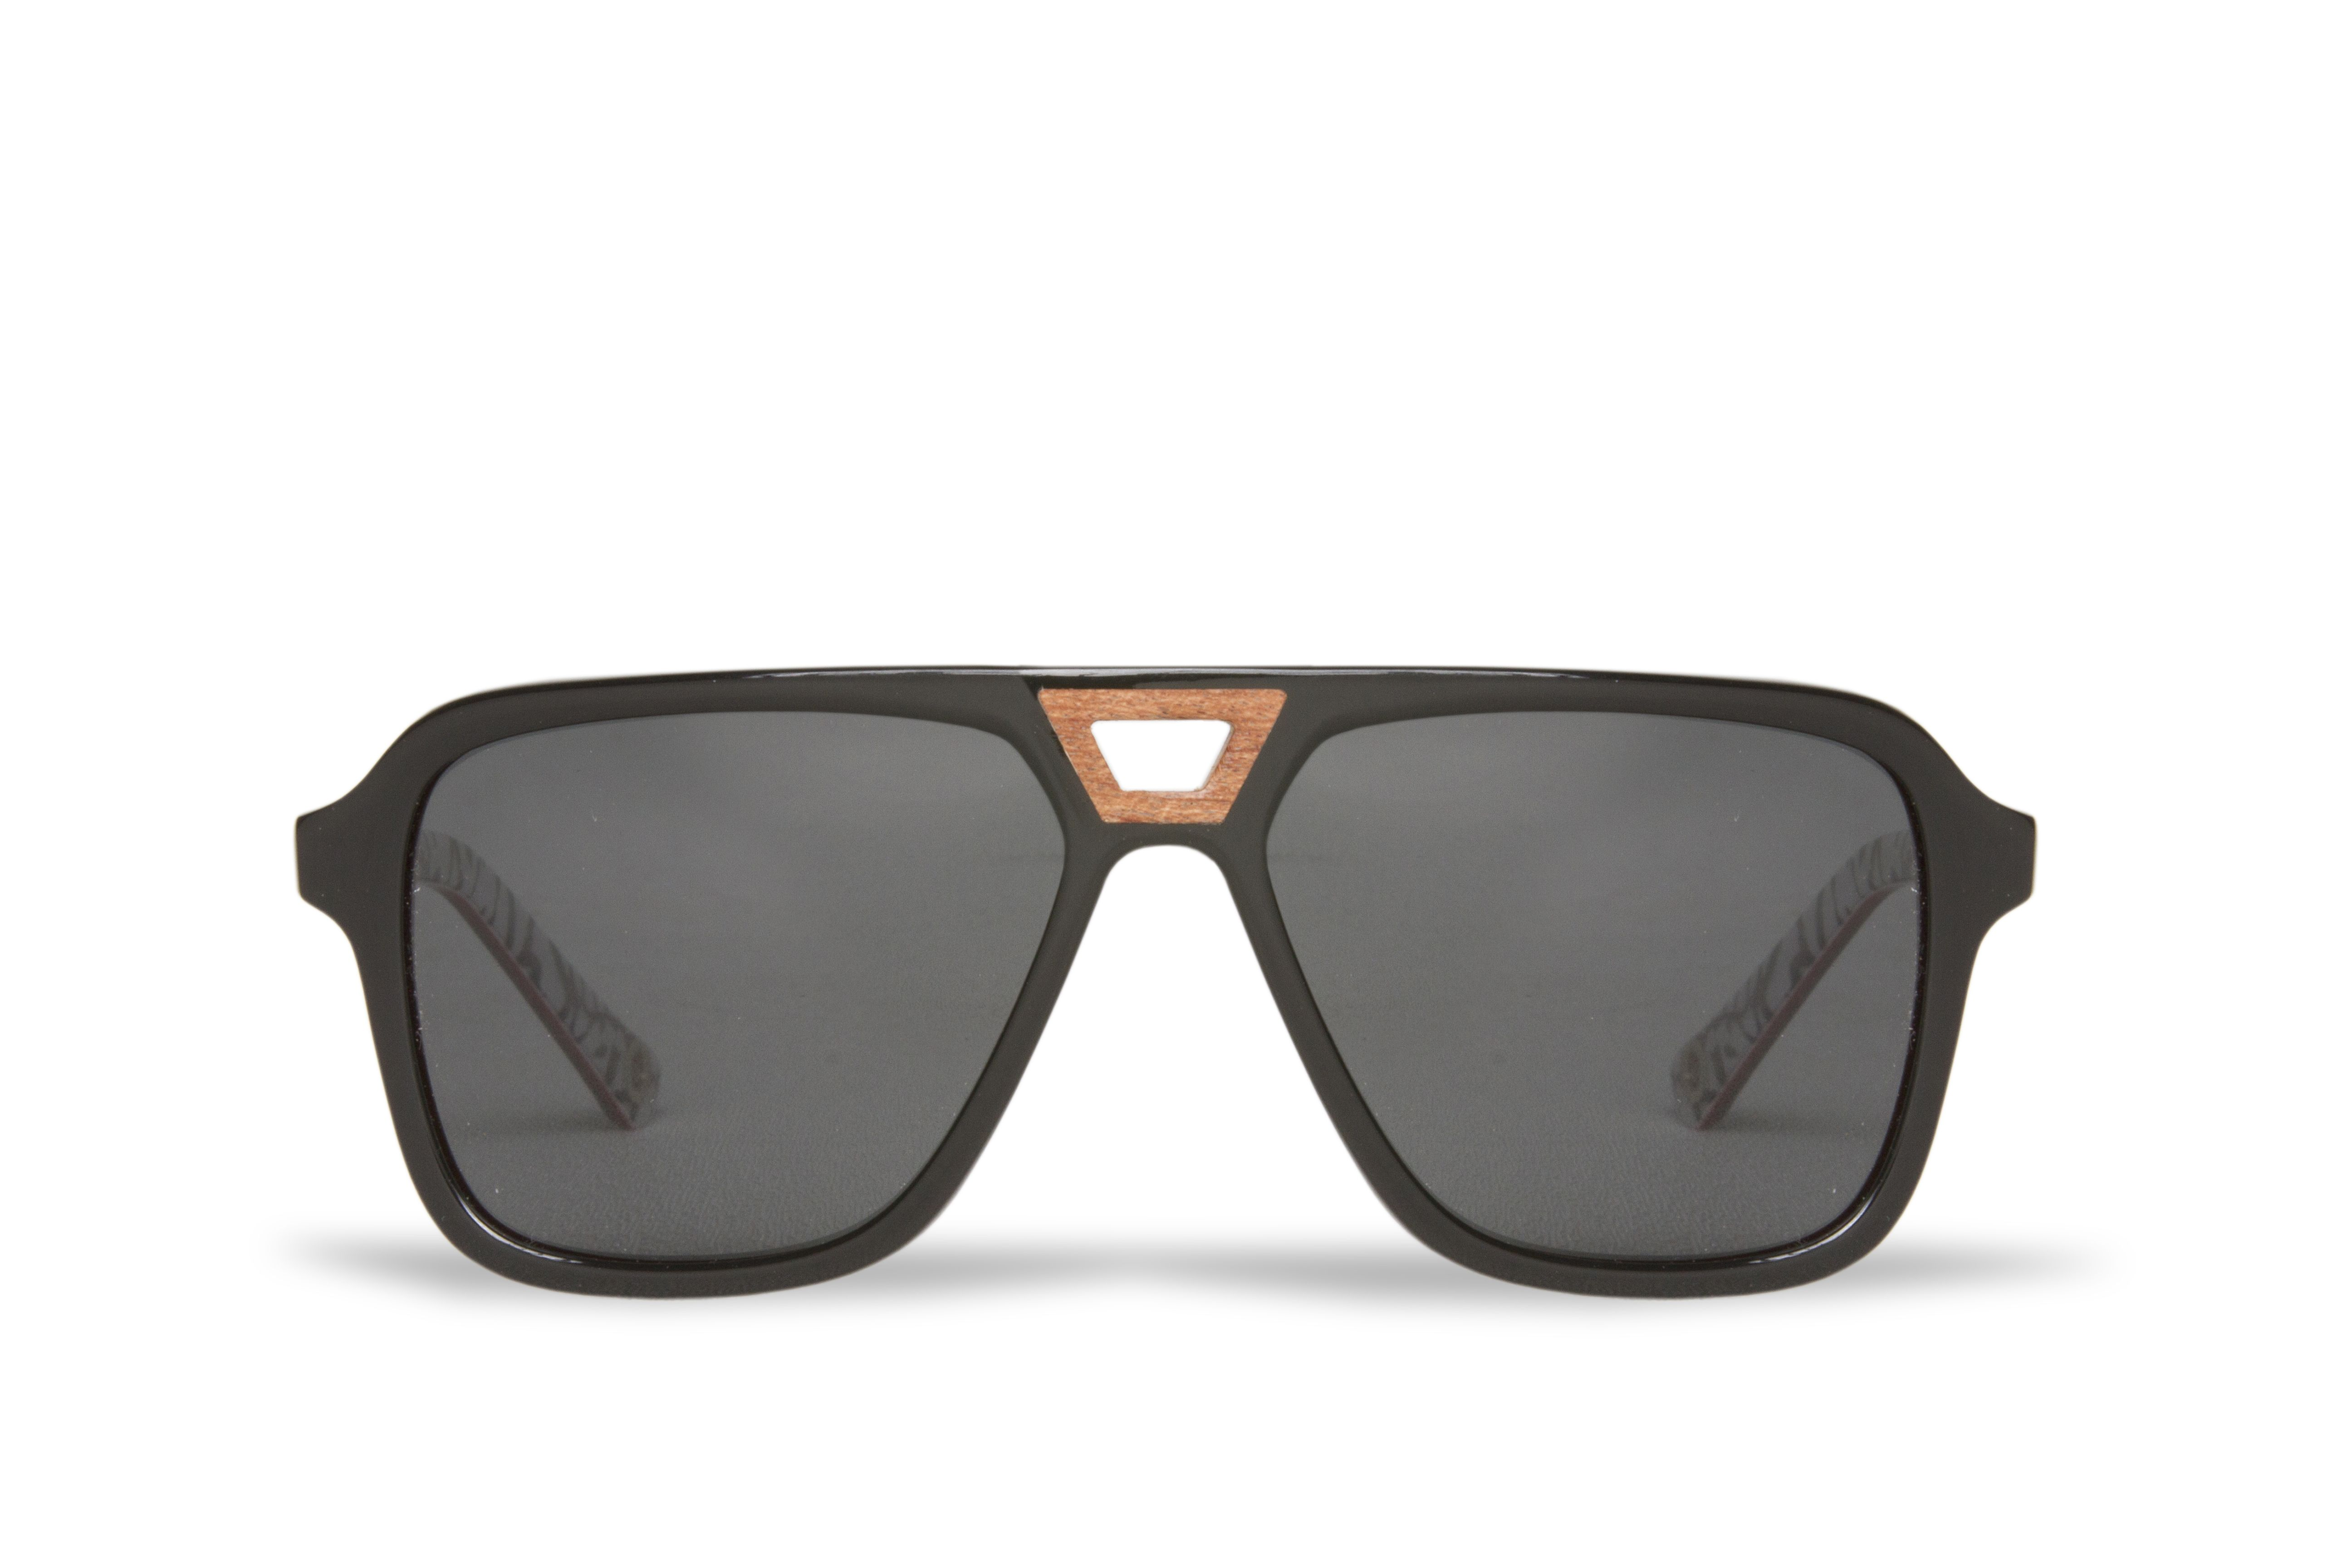 ffc601ecf3e Each pair of Proof sunglasses is handcrafted from natural woods. The frames  combines inspiration from classic silhouettes with a modern structure.